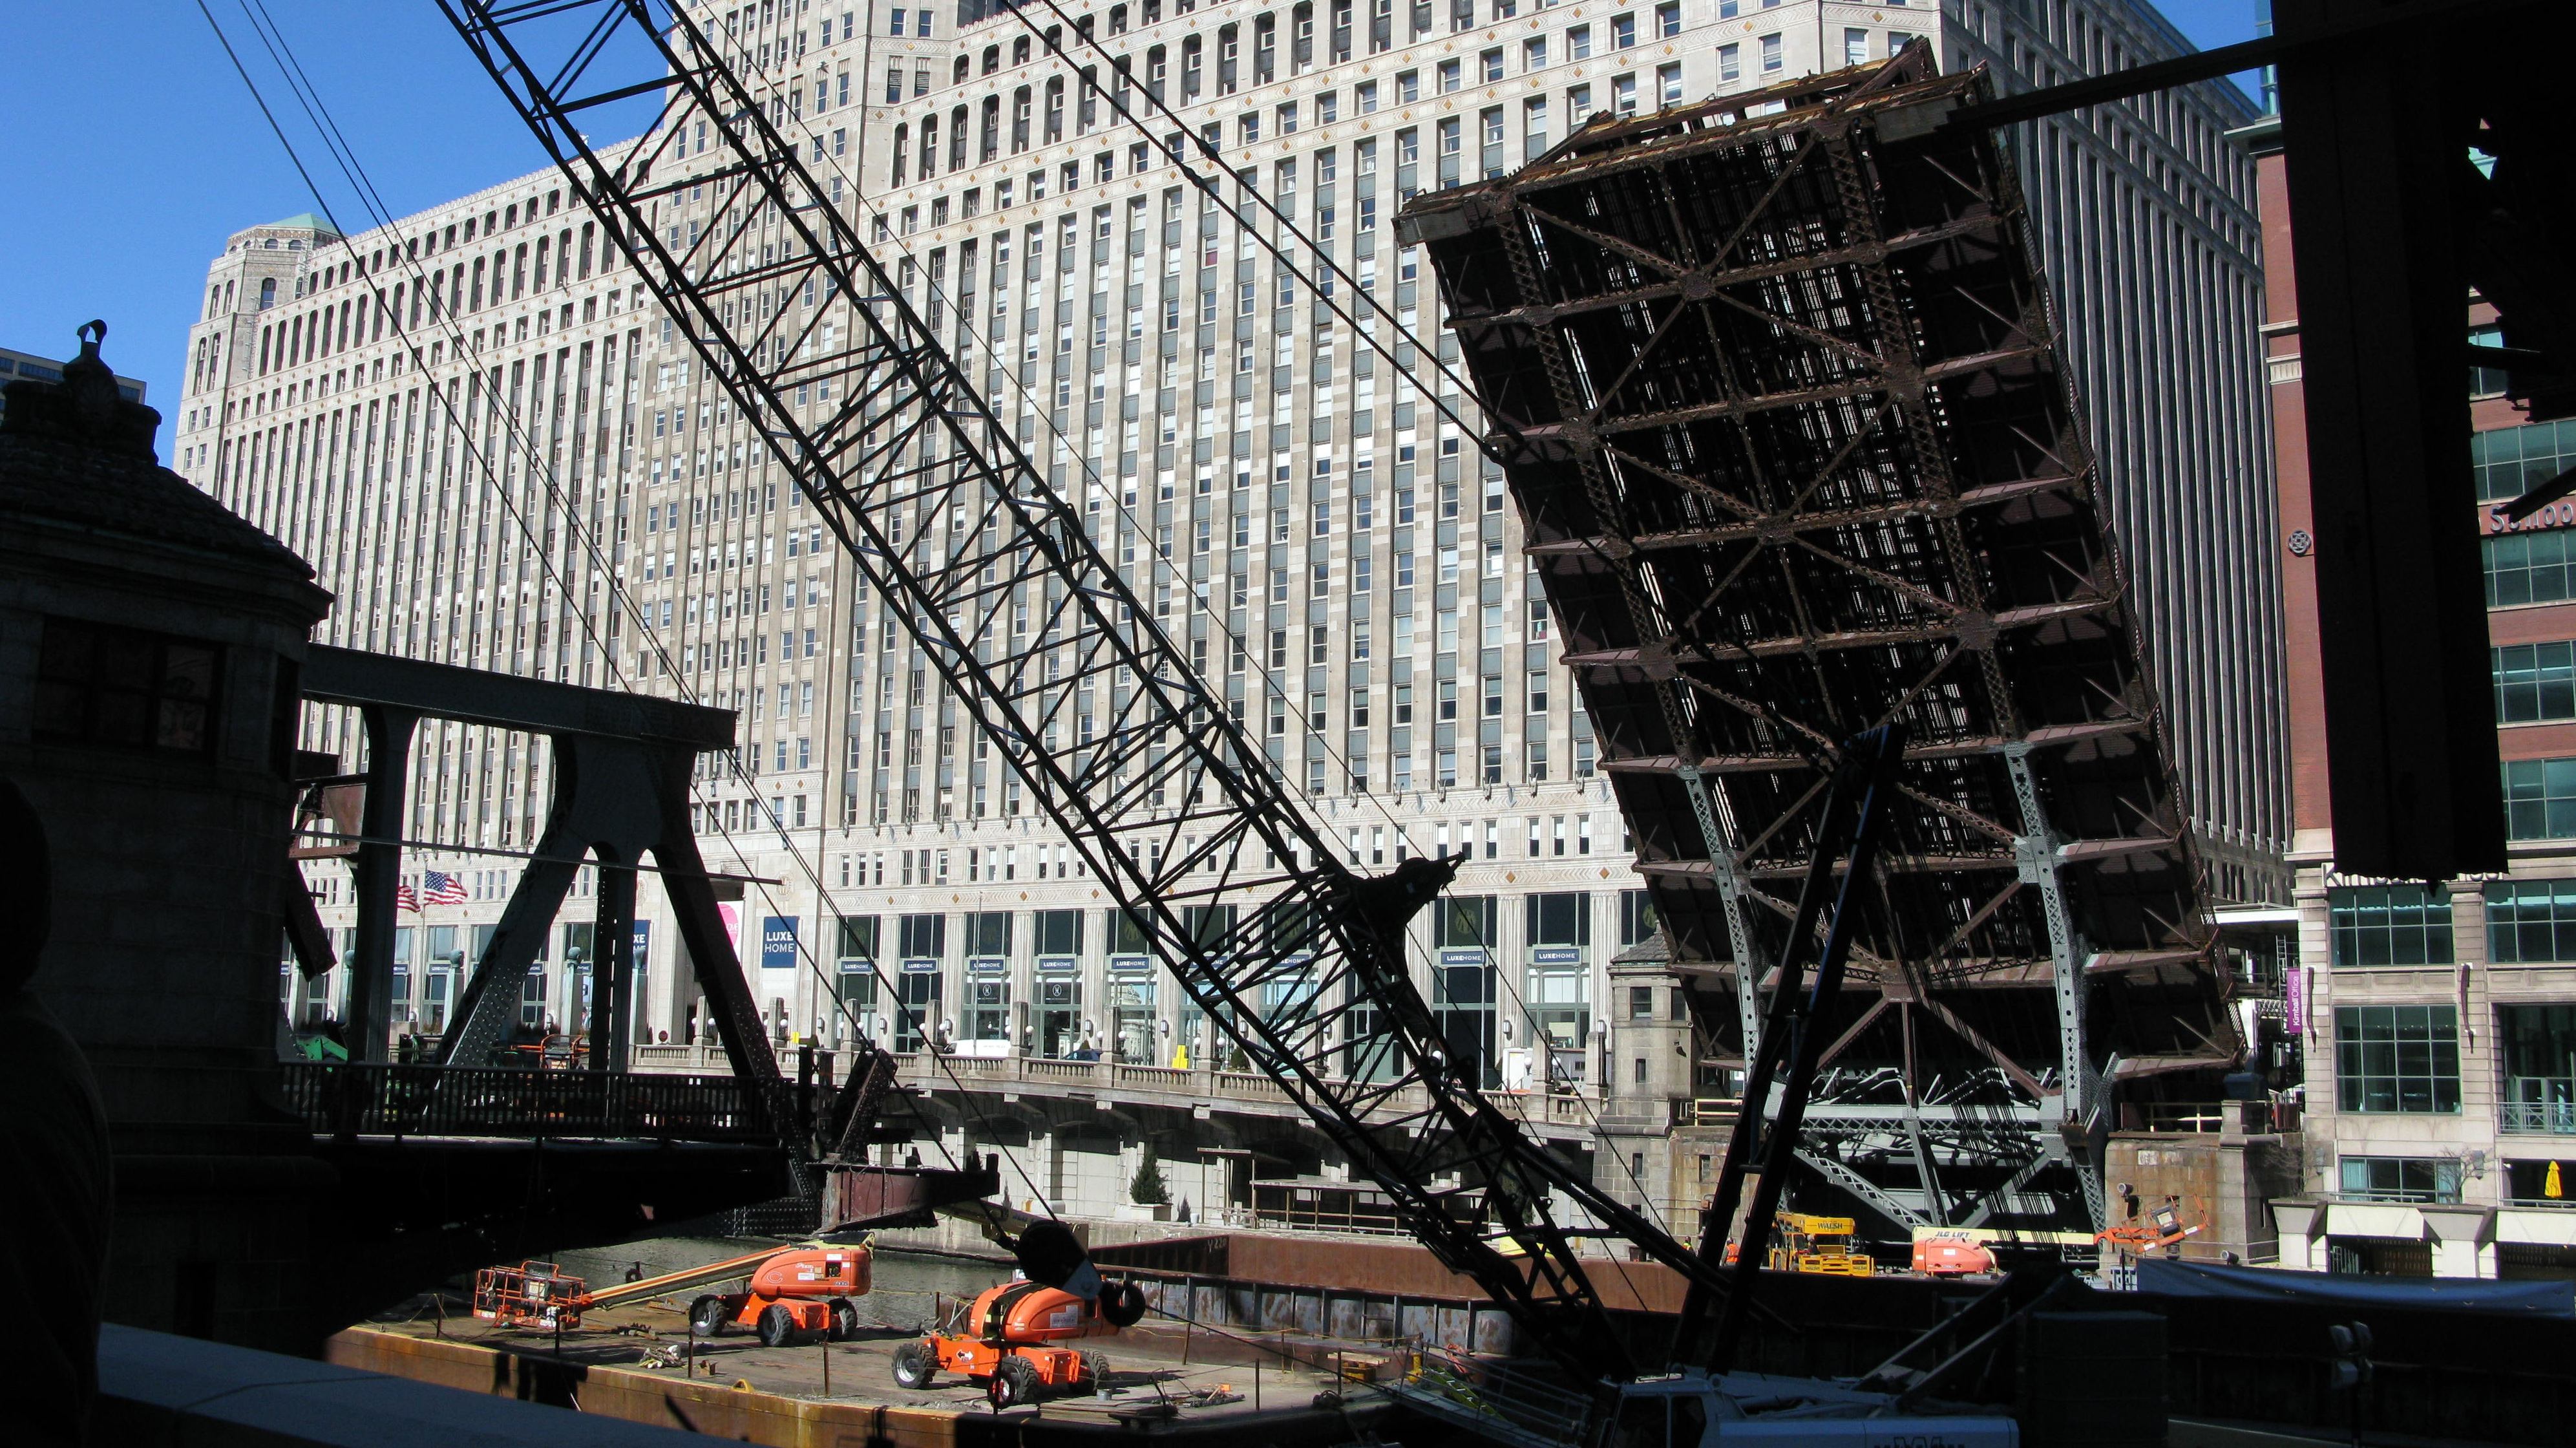 The north leaf section of the draw bridge is suspended in the air during construction. The bridge is considered a Chicago-style trunnion bascule bridge, divided into two sections, each of which is called a leaf. Each leaf goes up and down -- to allow river traffic to pass through -- with the use of 2 million pound counter weights.